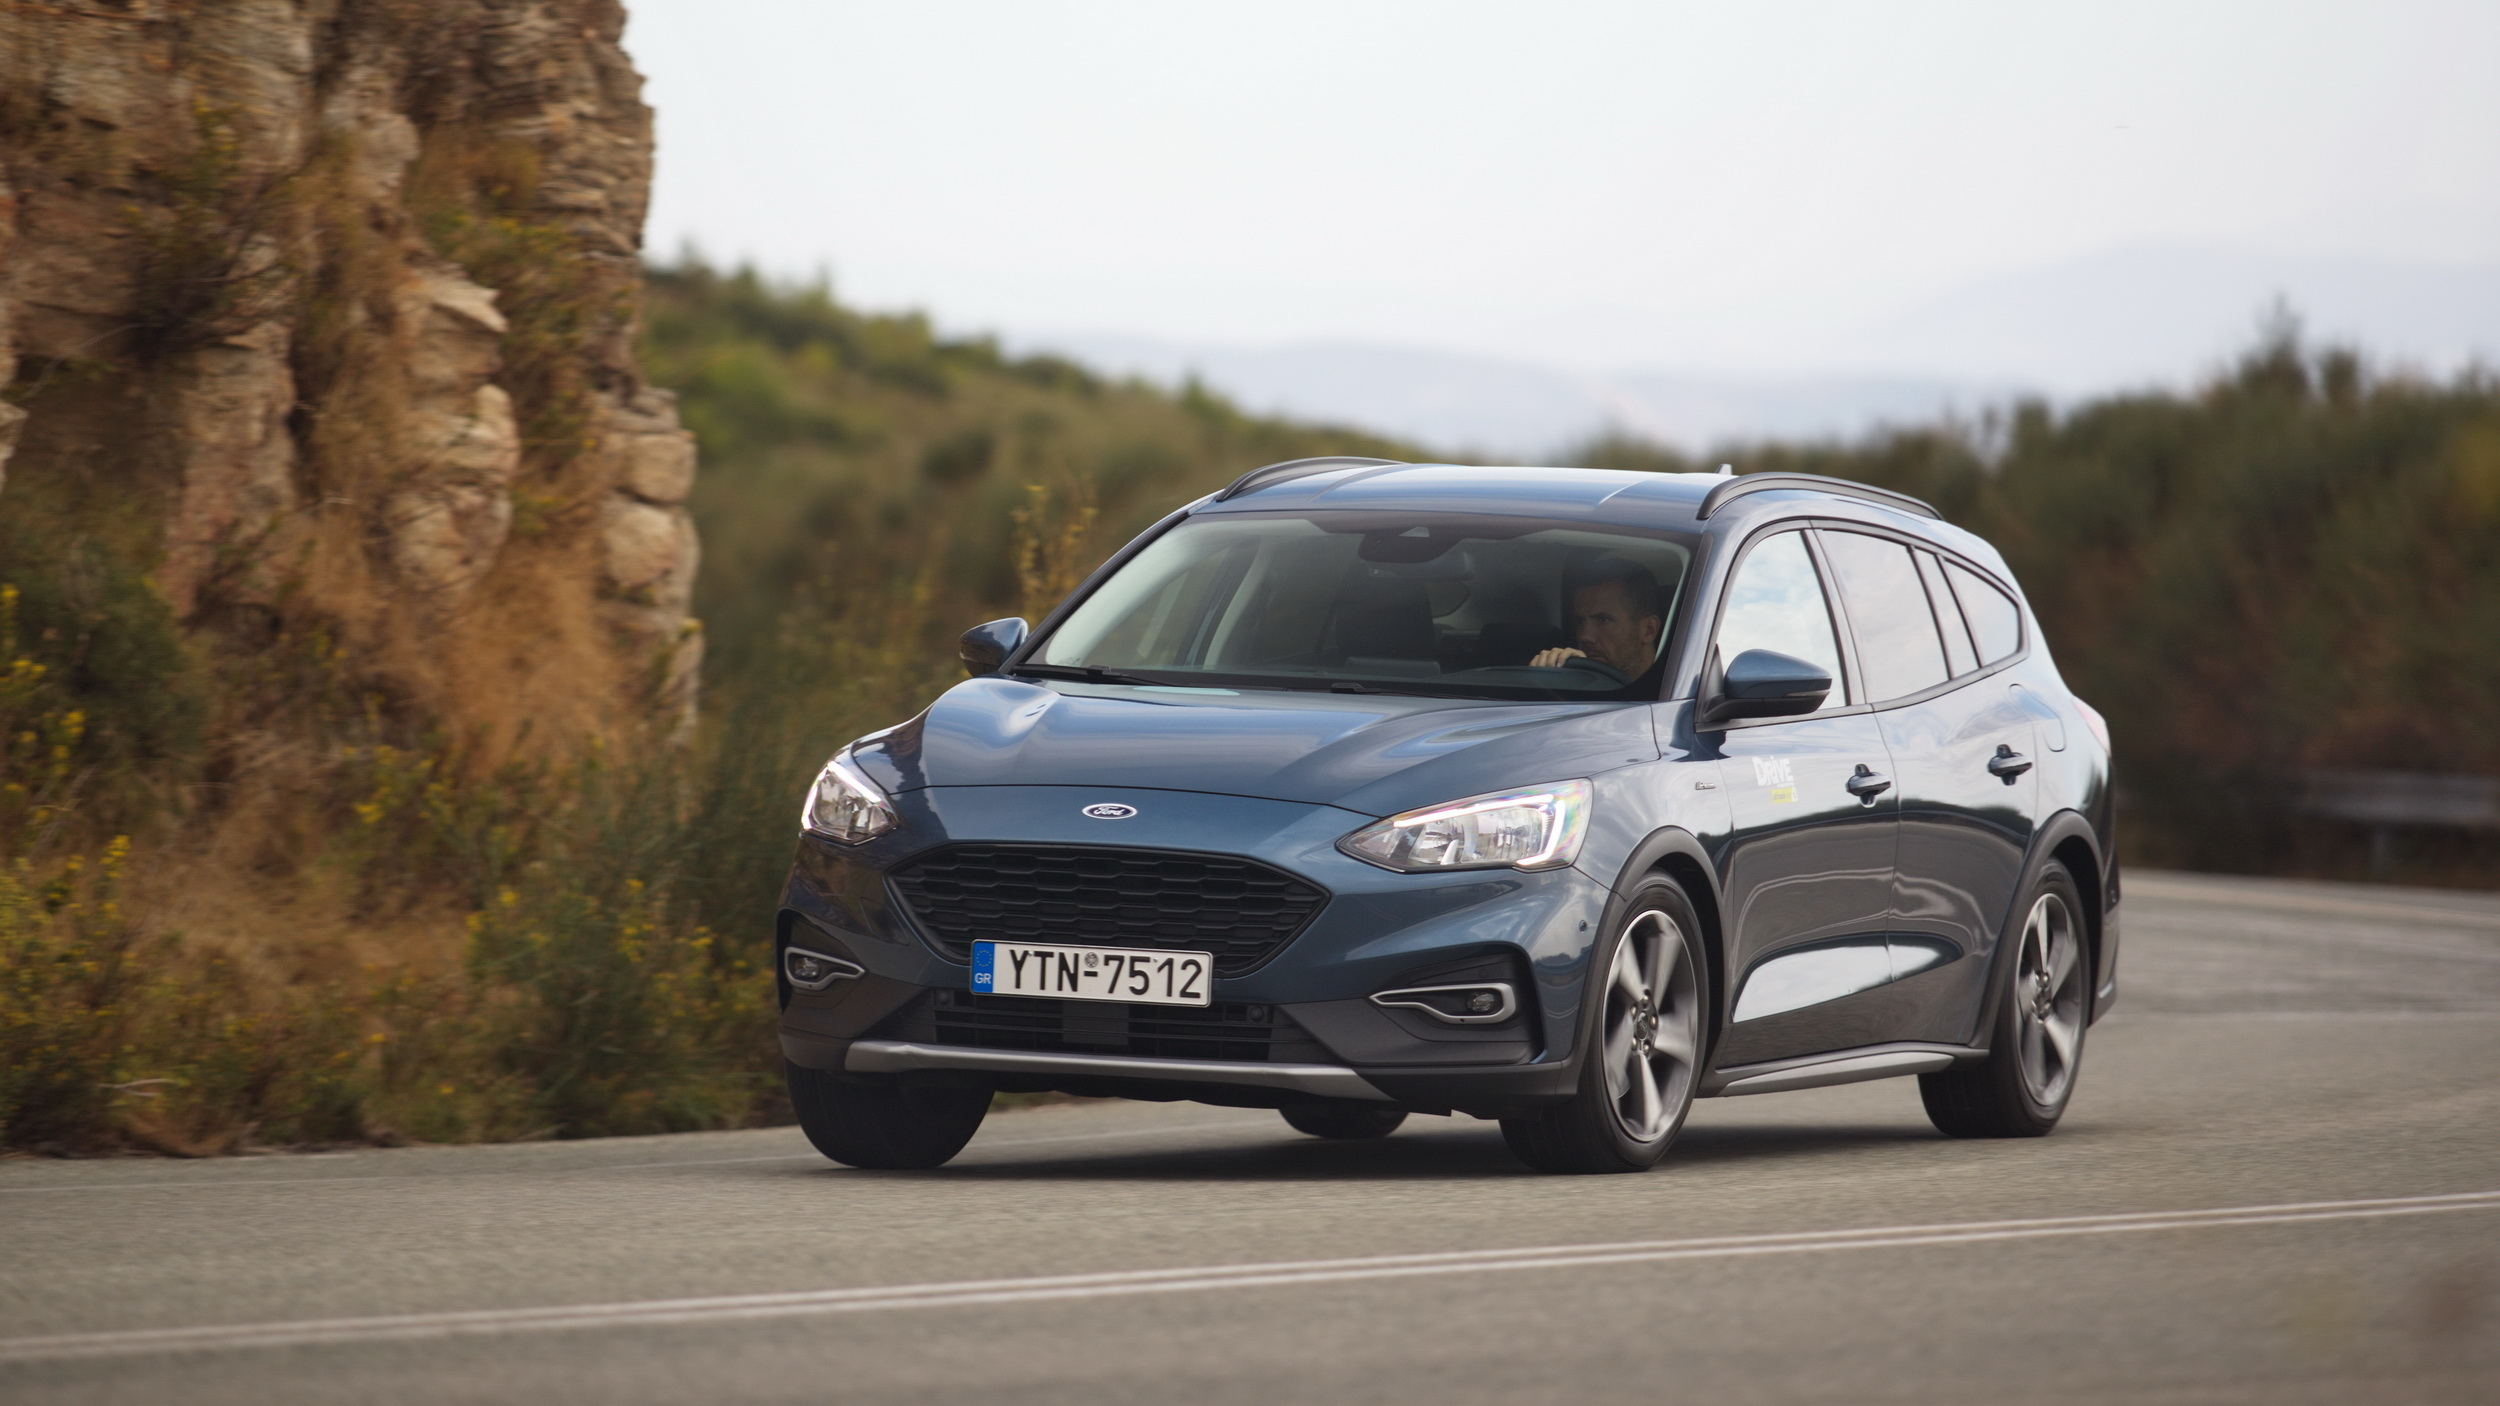 Test drive: Ford Focus Wagon Active 1.5 EcoBoost 150 PS